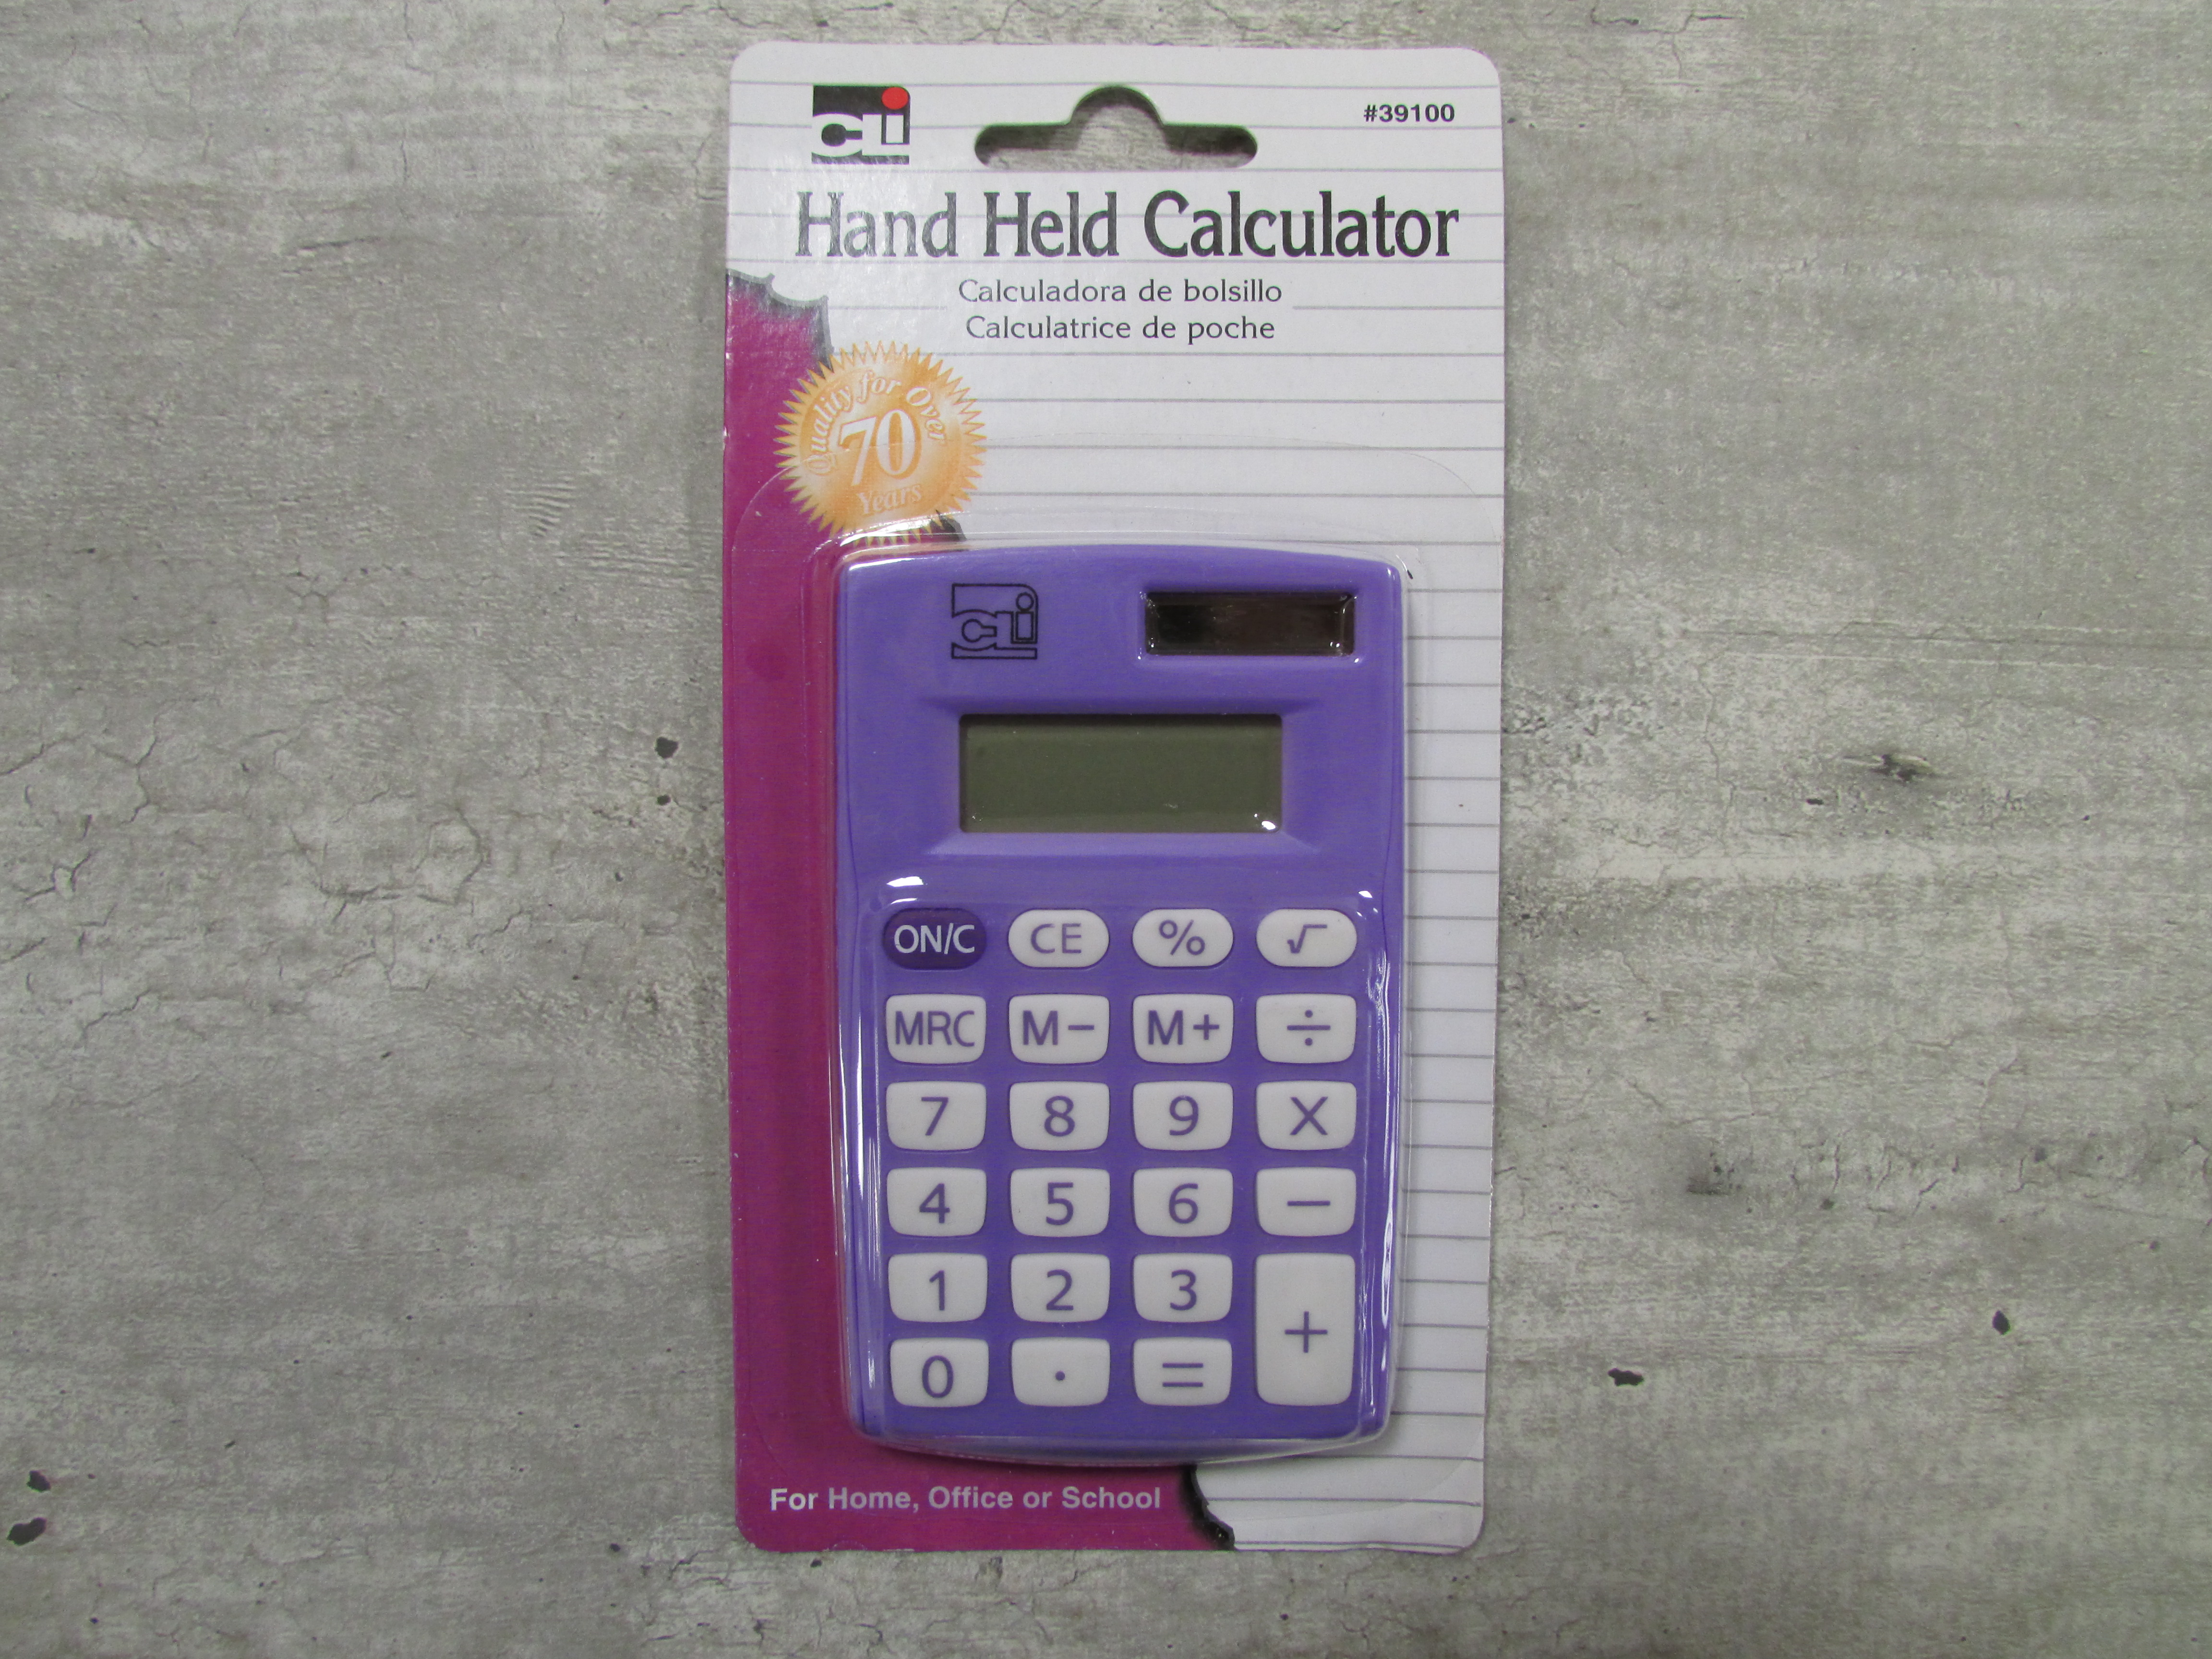 Image for the Calculator, 8-Digit Display, Dual Power, Asst. Colors product